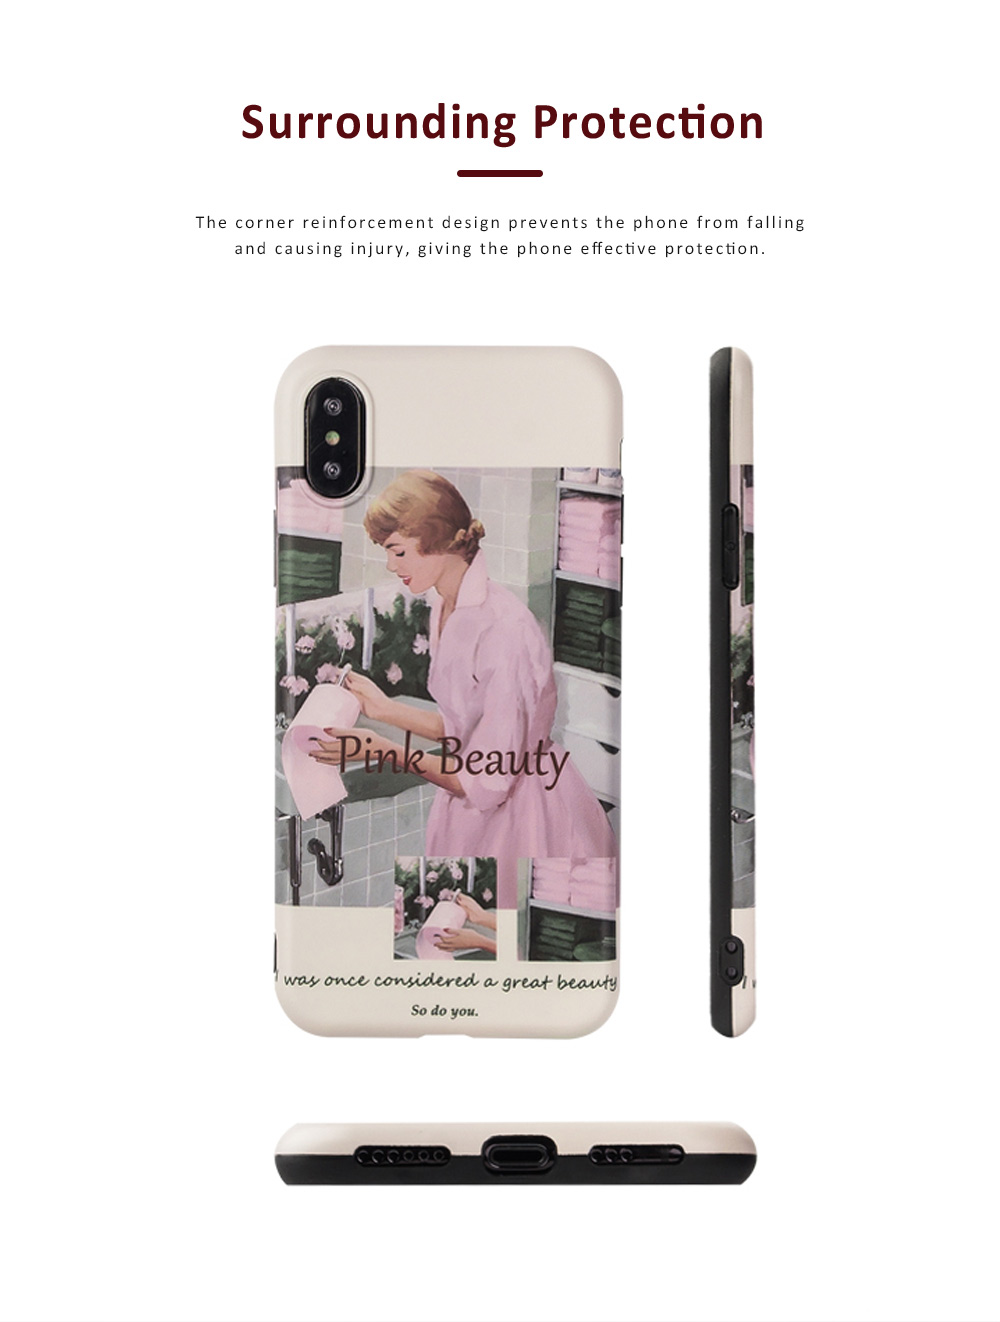 Retro Pink Girl Illustration Phone Case for iPhone 8 7, Elegant and Delicate Protective Case for iPhone XS Max XR X 7 Plus 8 Plus 1